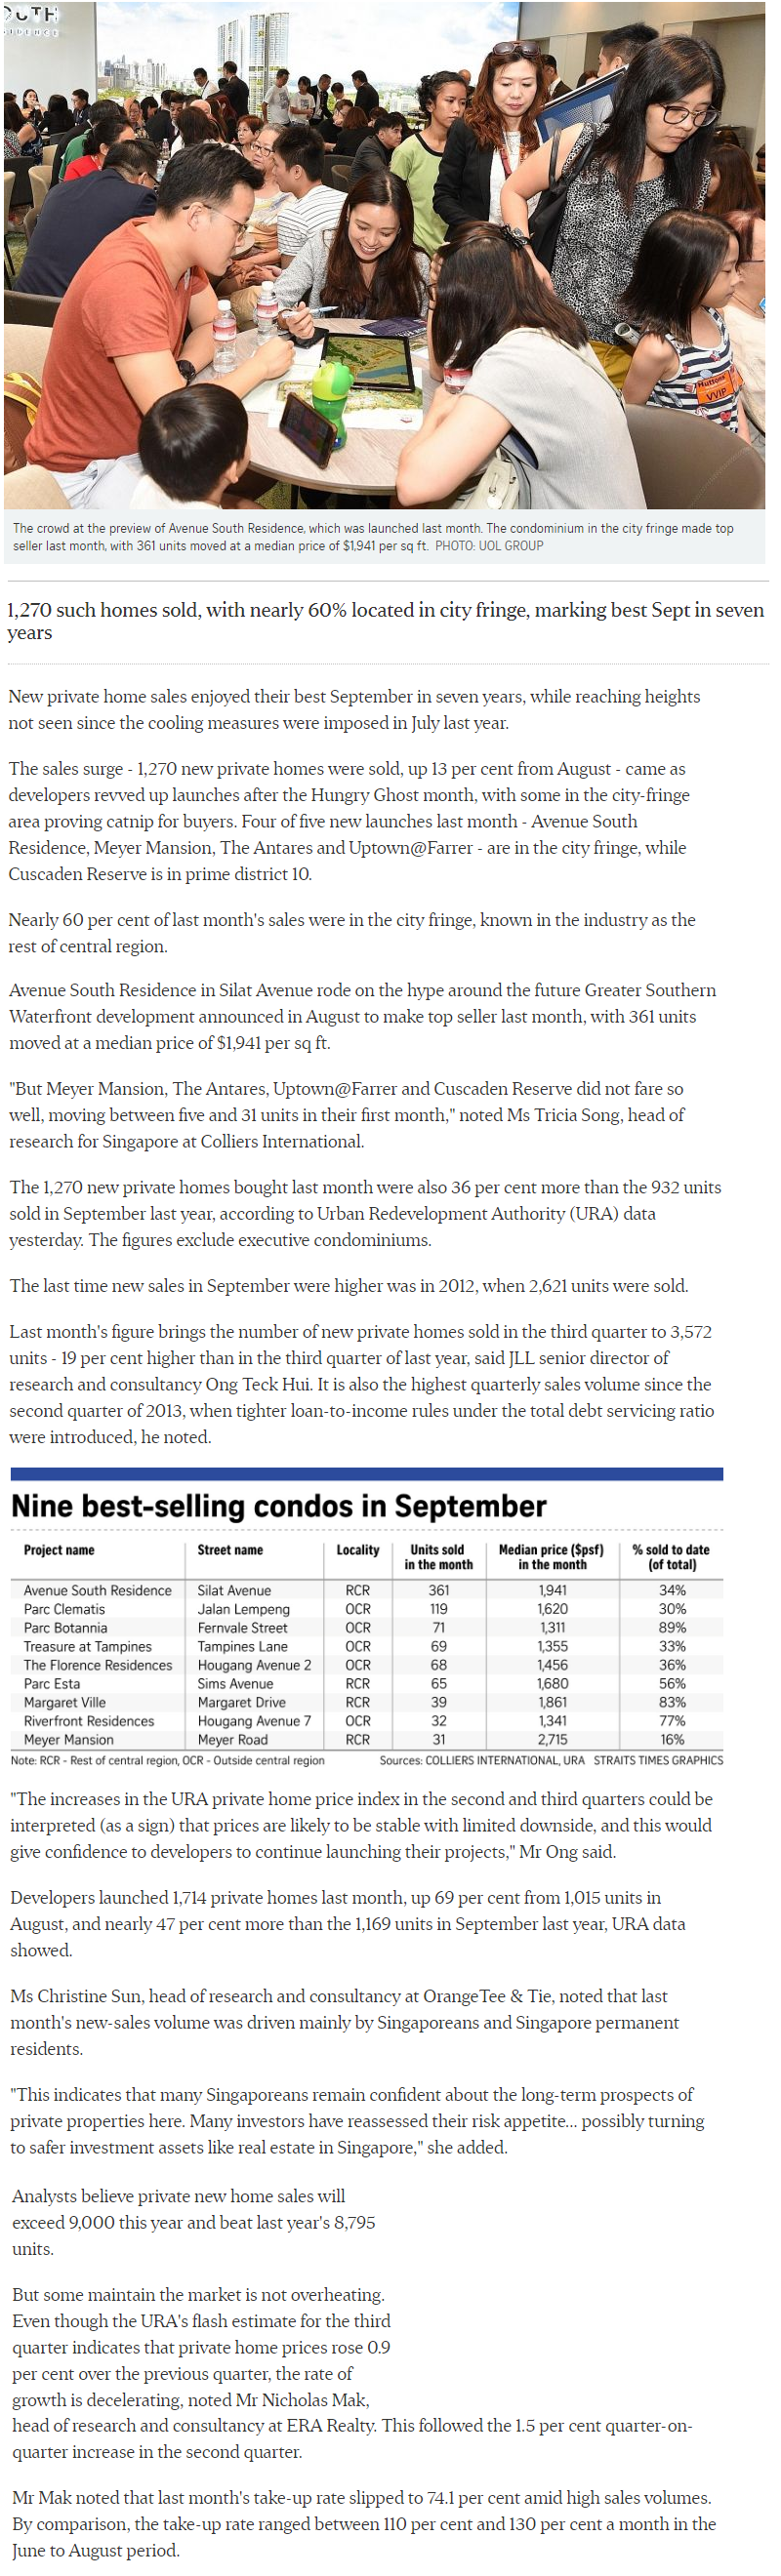 New private Home Sales Hit A Hight In September